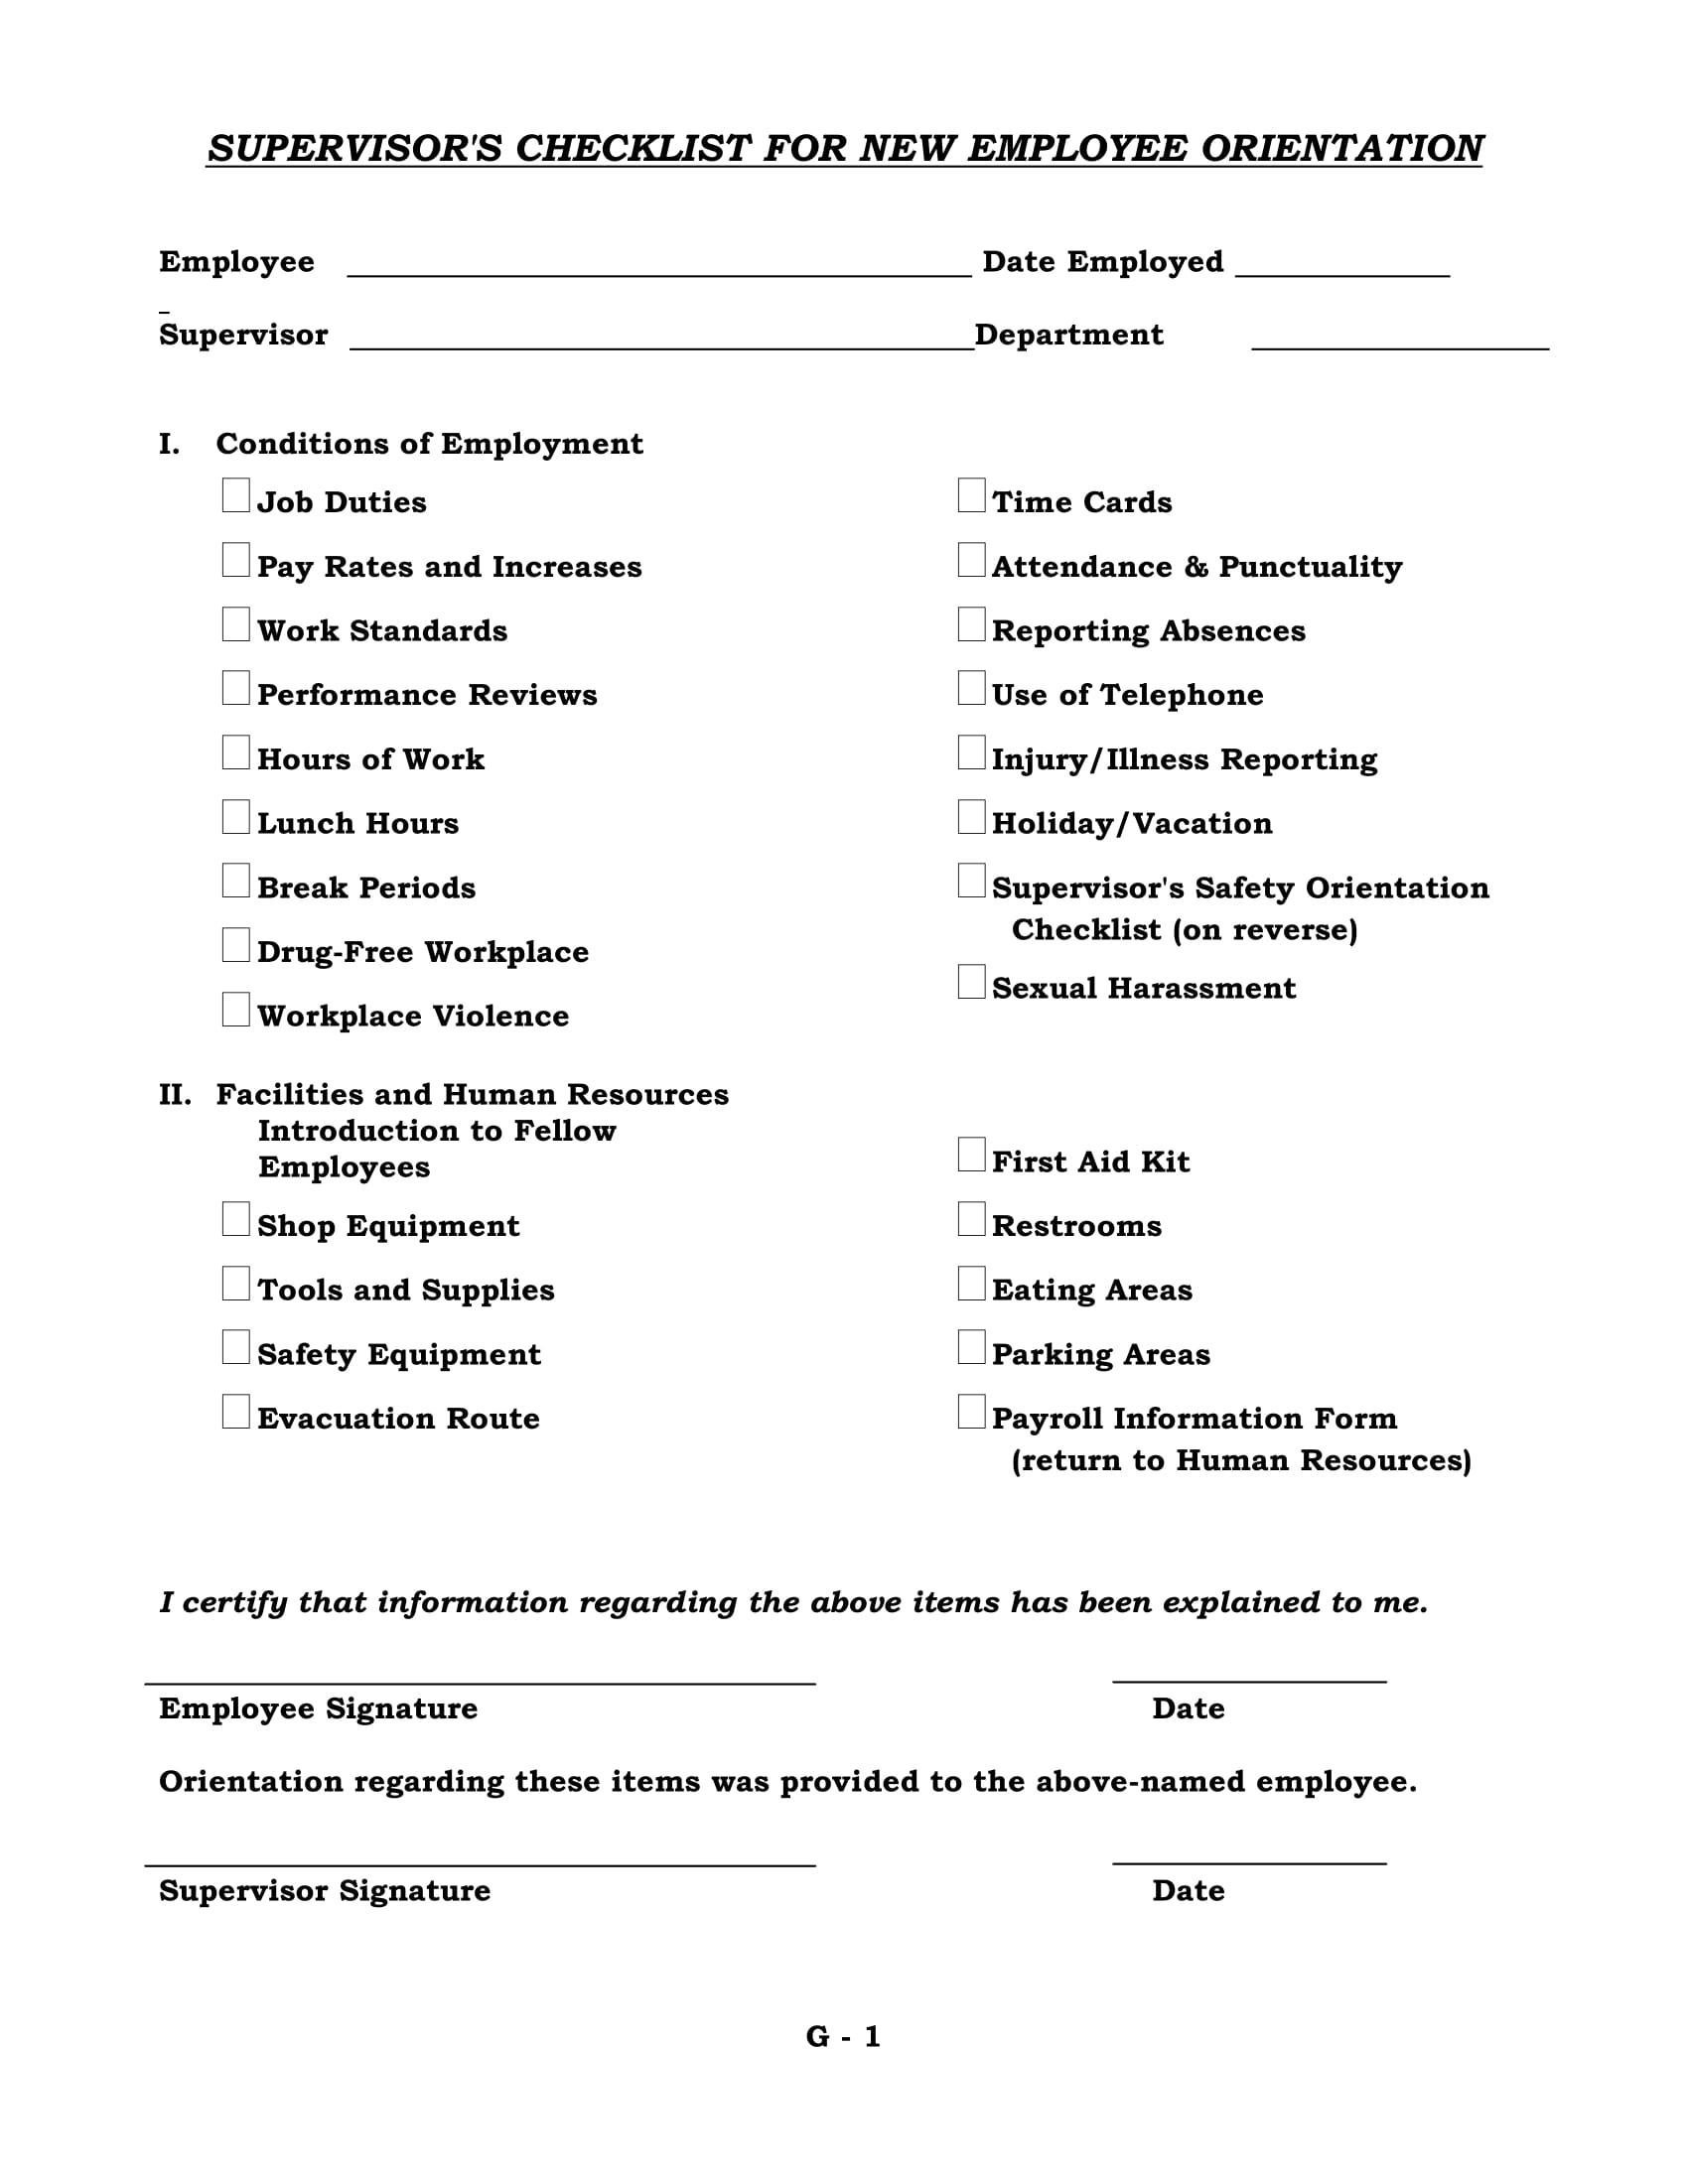 supervisors checklist for new employee orientation